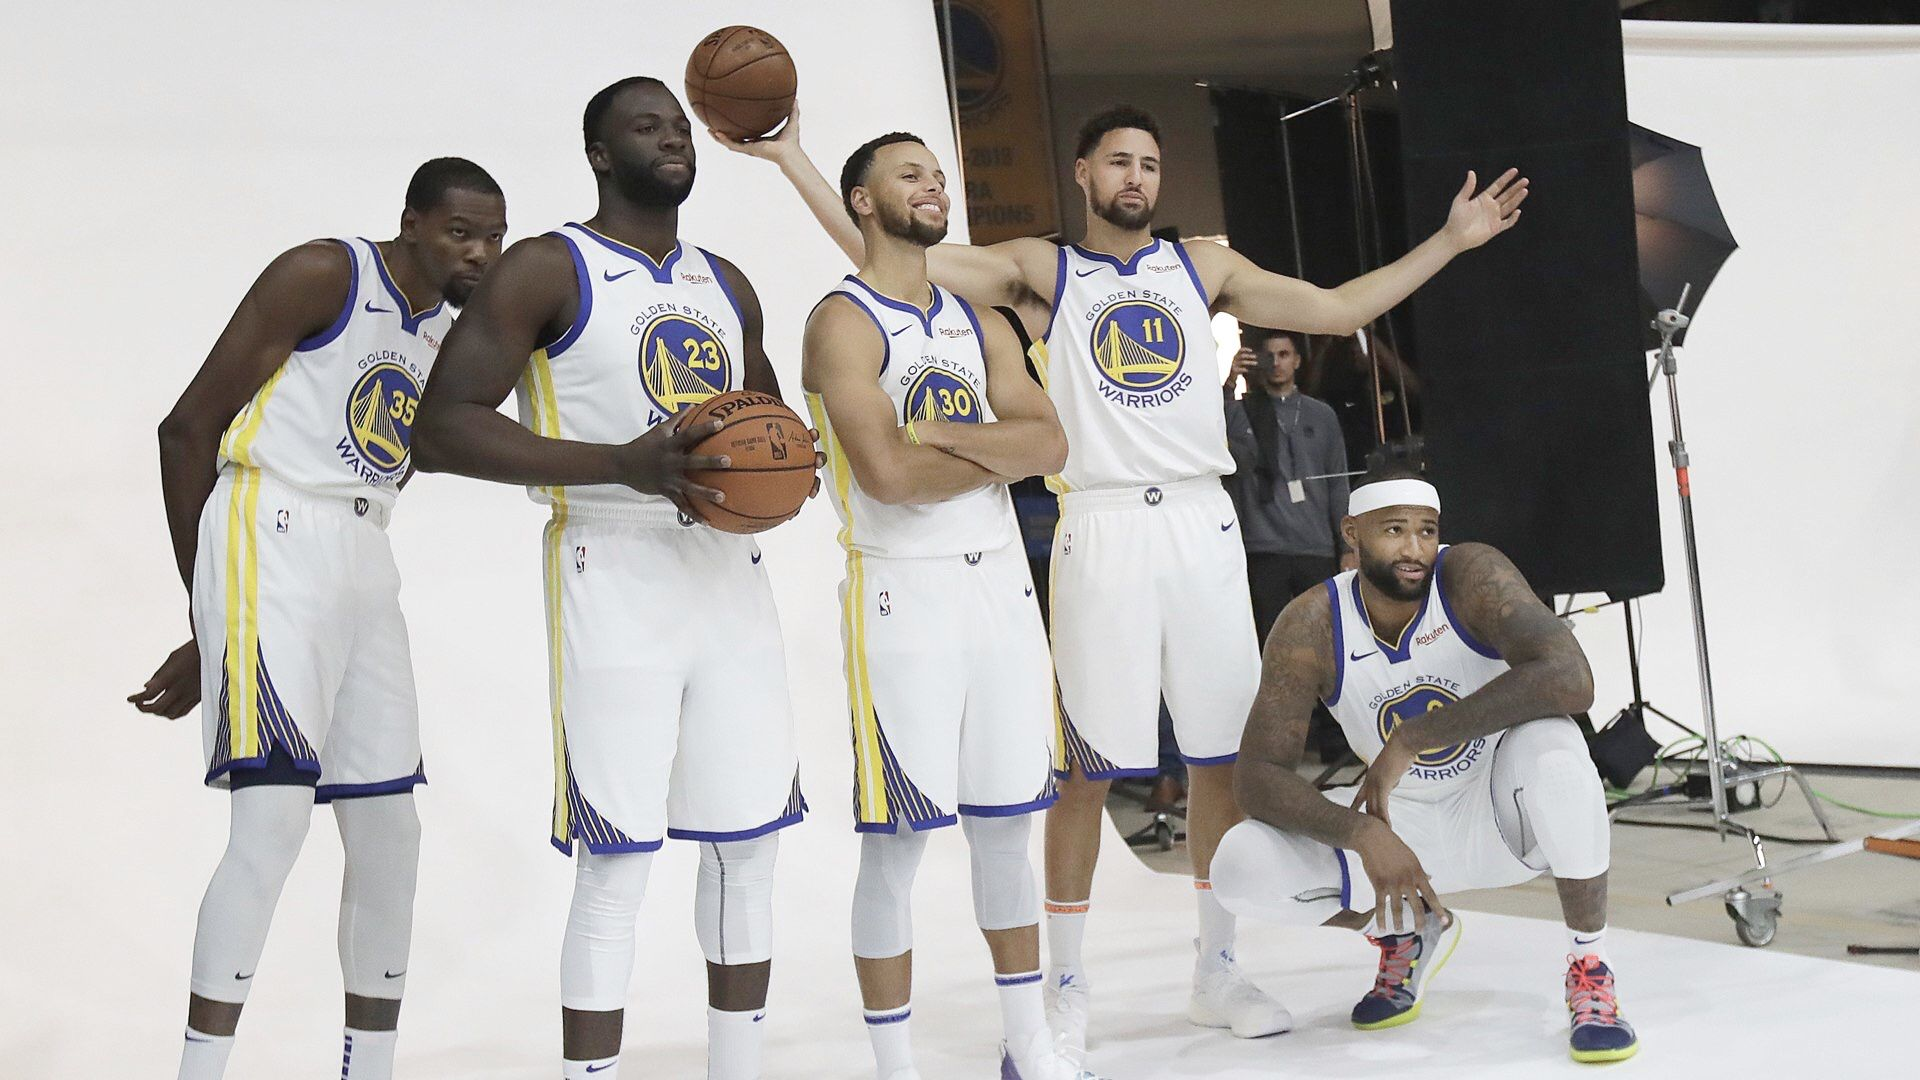 Kevindurant Stephencurry Klaythompson Draymondgreen And Demarcuscousins Of The Golden State Warriors Stephen Curry Yoga For Kids Warrior